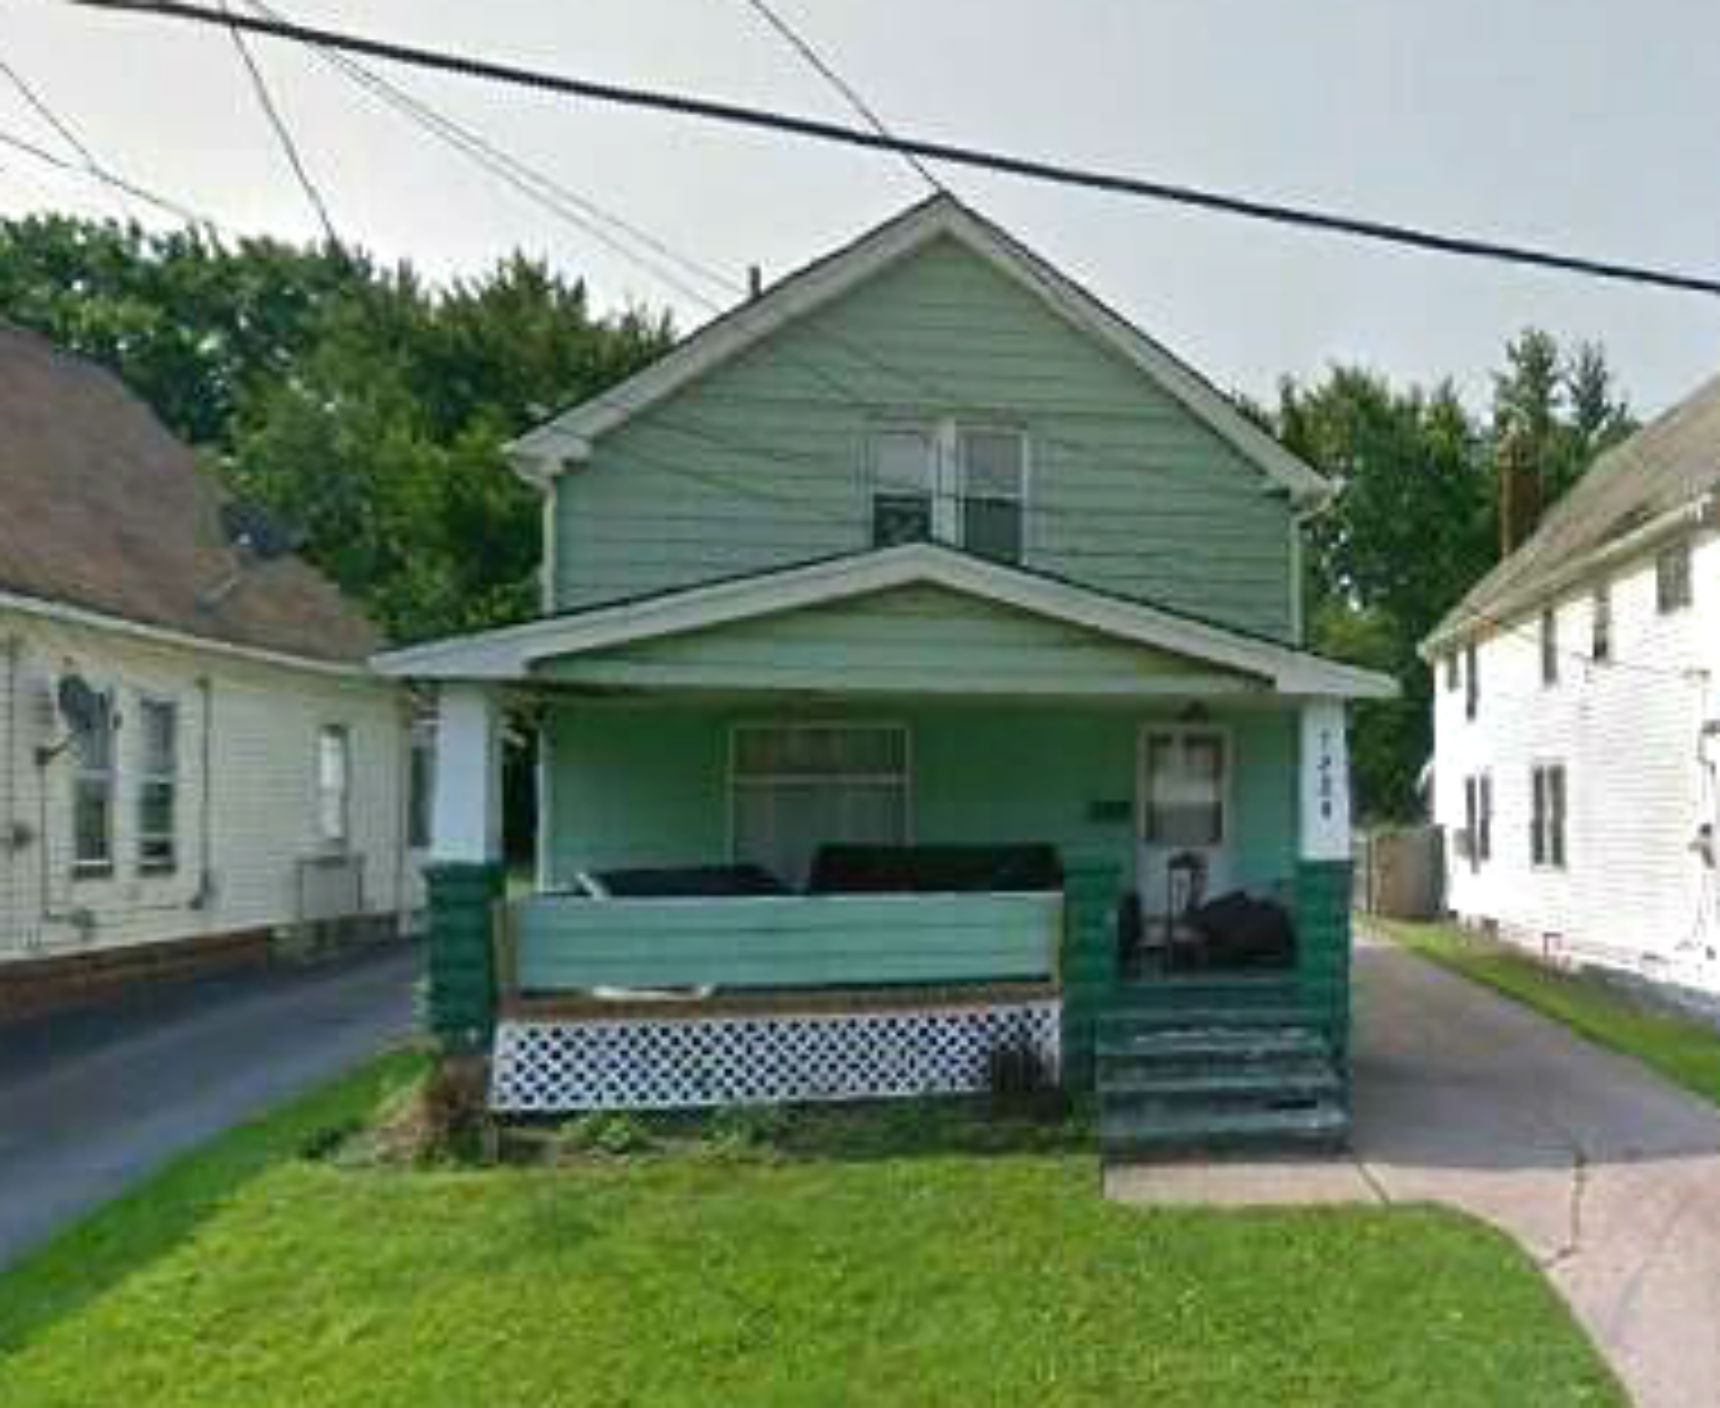 7424 Indiana Ave., Cleveland | 4 bed 2 bath | 1,104 Sq. Ft. | $71,900